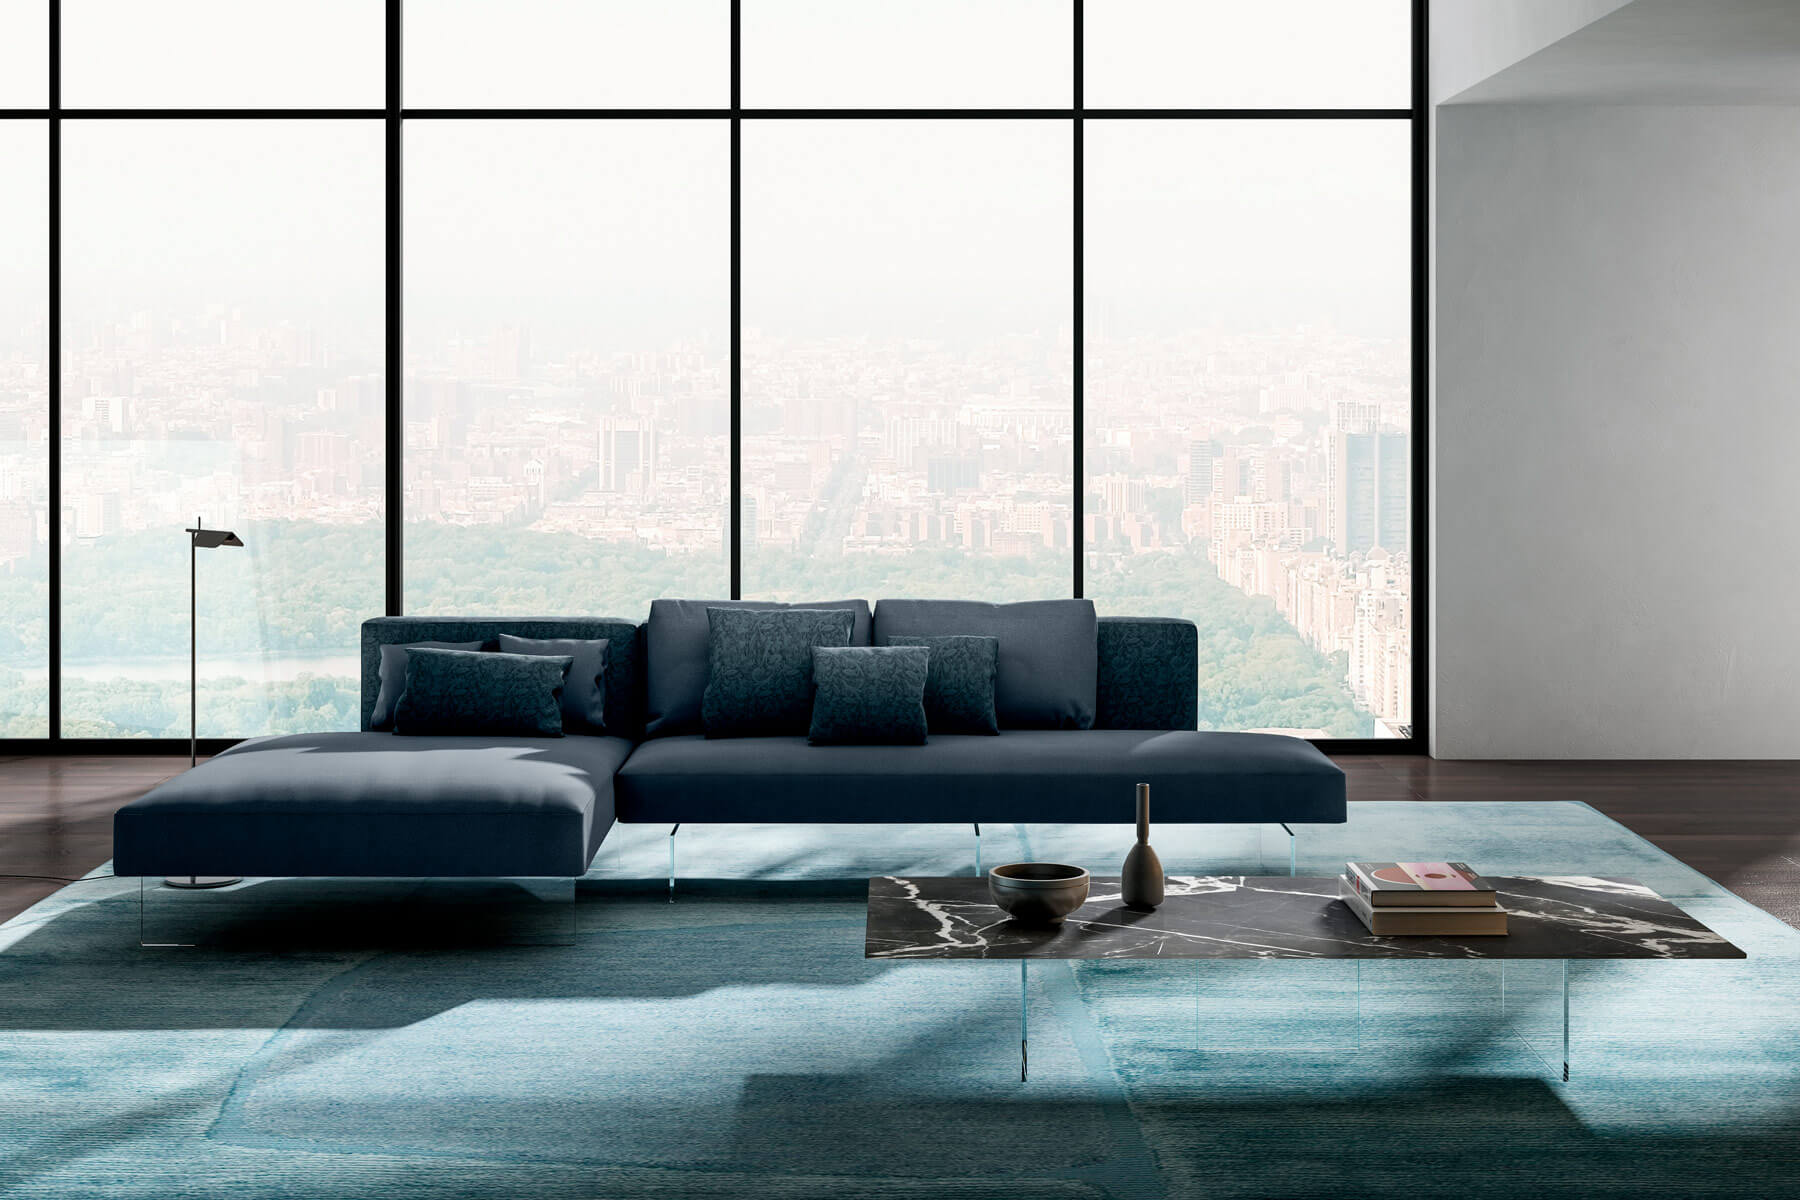 Seats En Sofa Arnhem Air Sofa A Modular Sofa For Your Well Being Lago Design